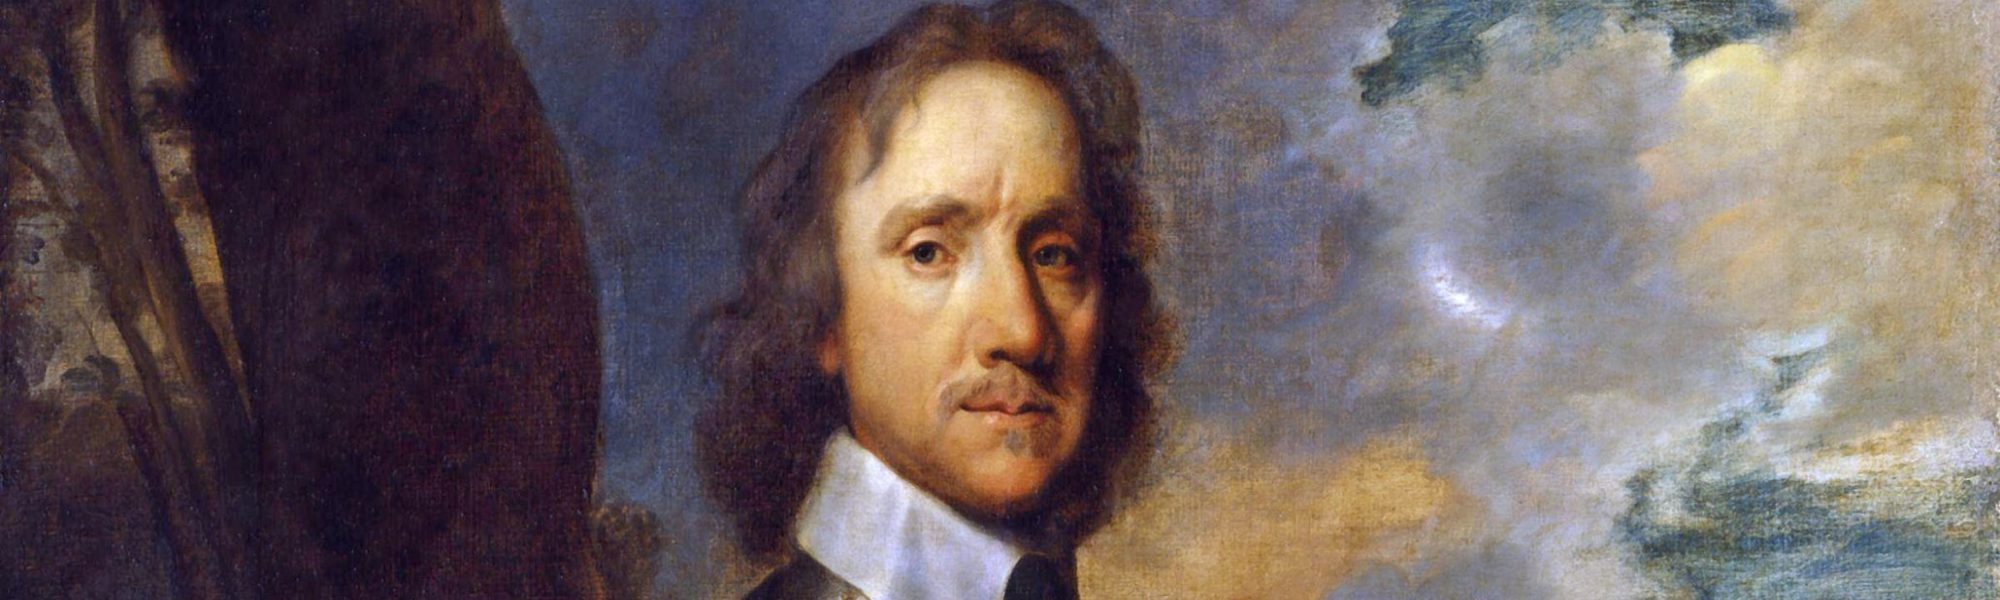 Oliver Cromwell - Public domain